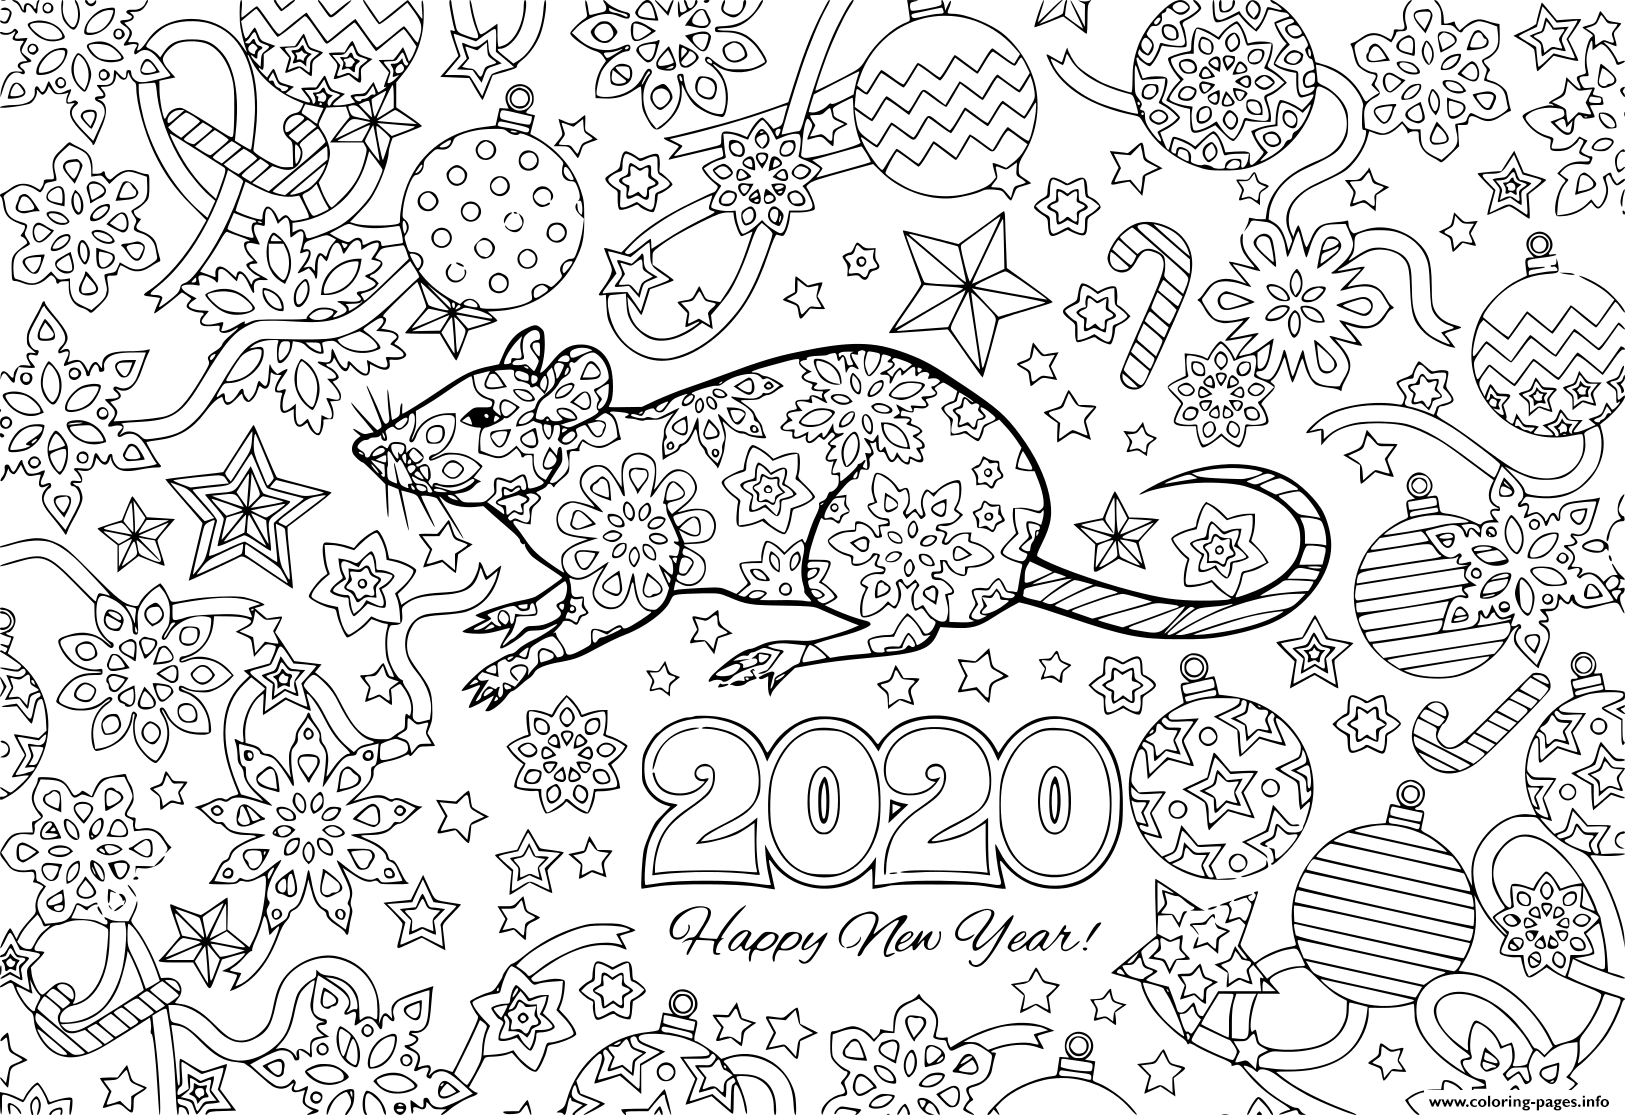 Print New Year 2020 Rat And Festive Objects Image For Calendar Coloring Pages New Year Coloring Pages Coloring Pages Printable Coloring Pages